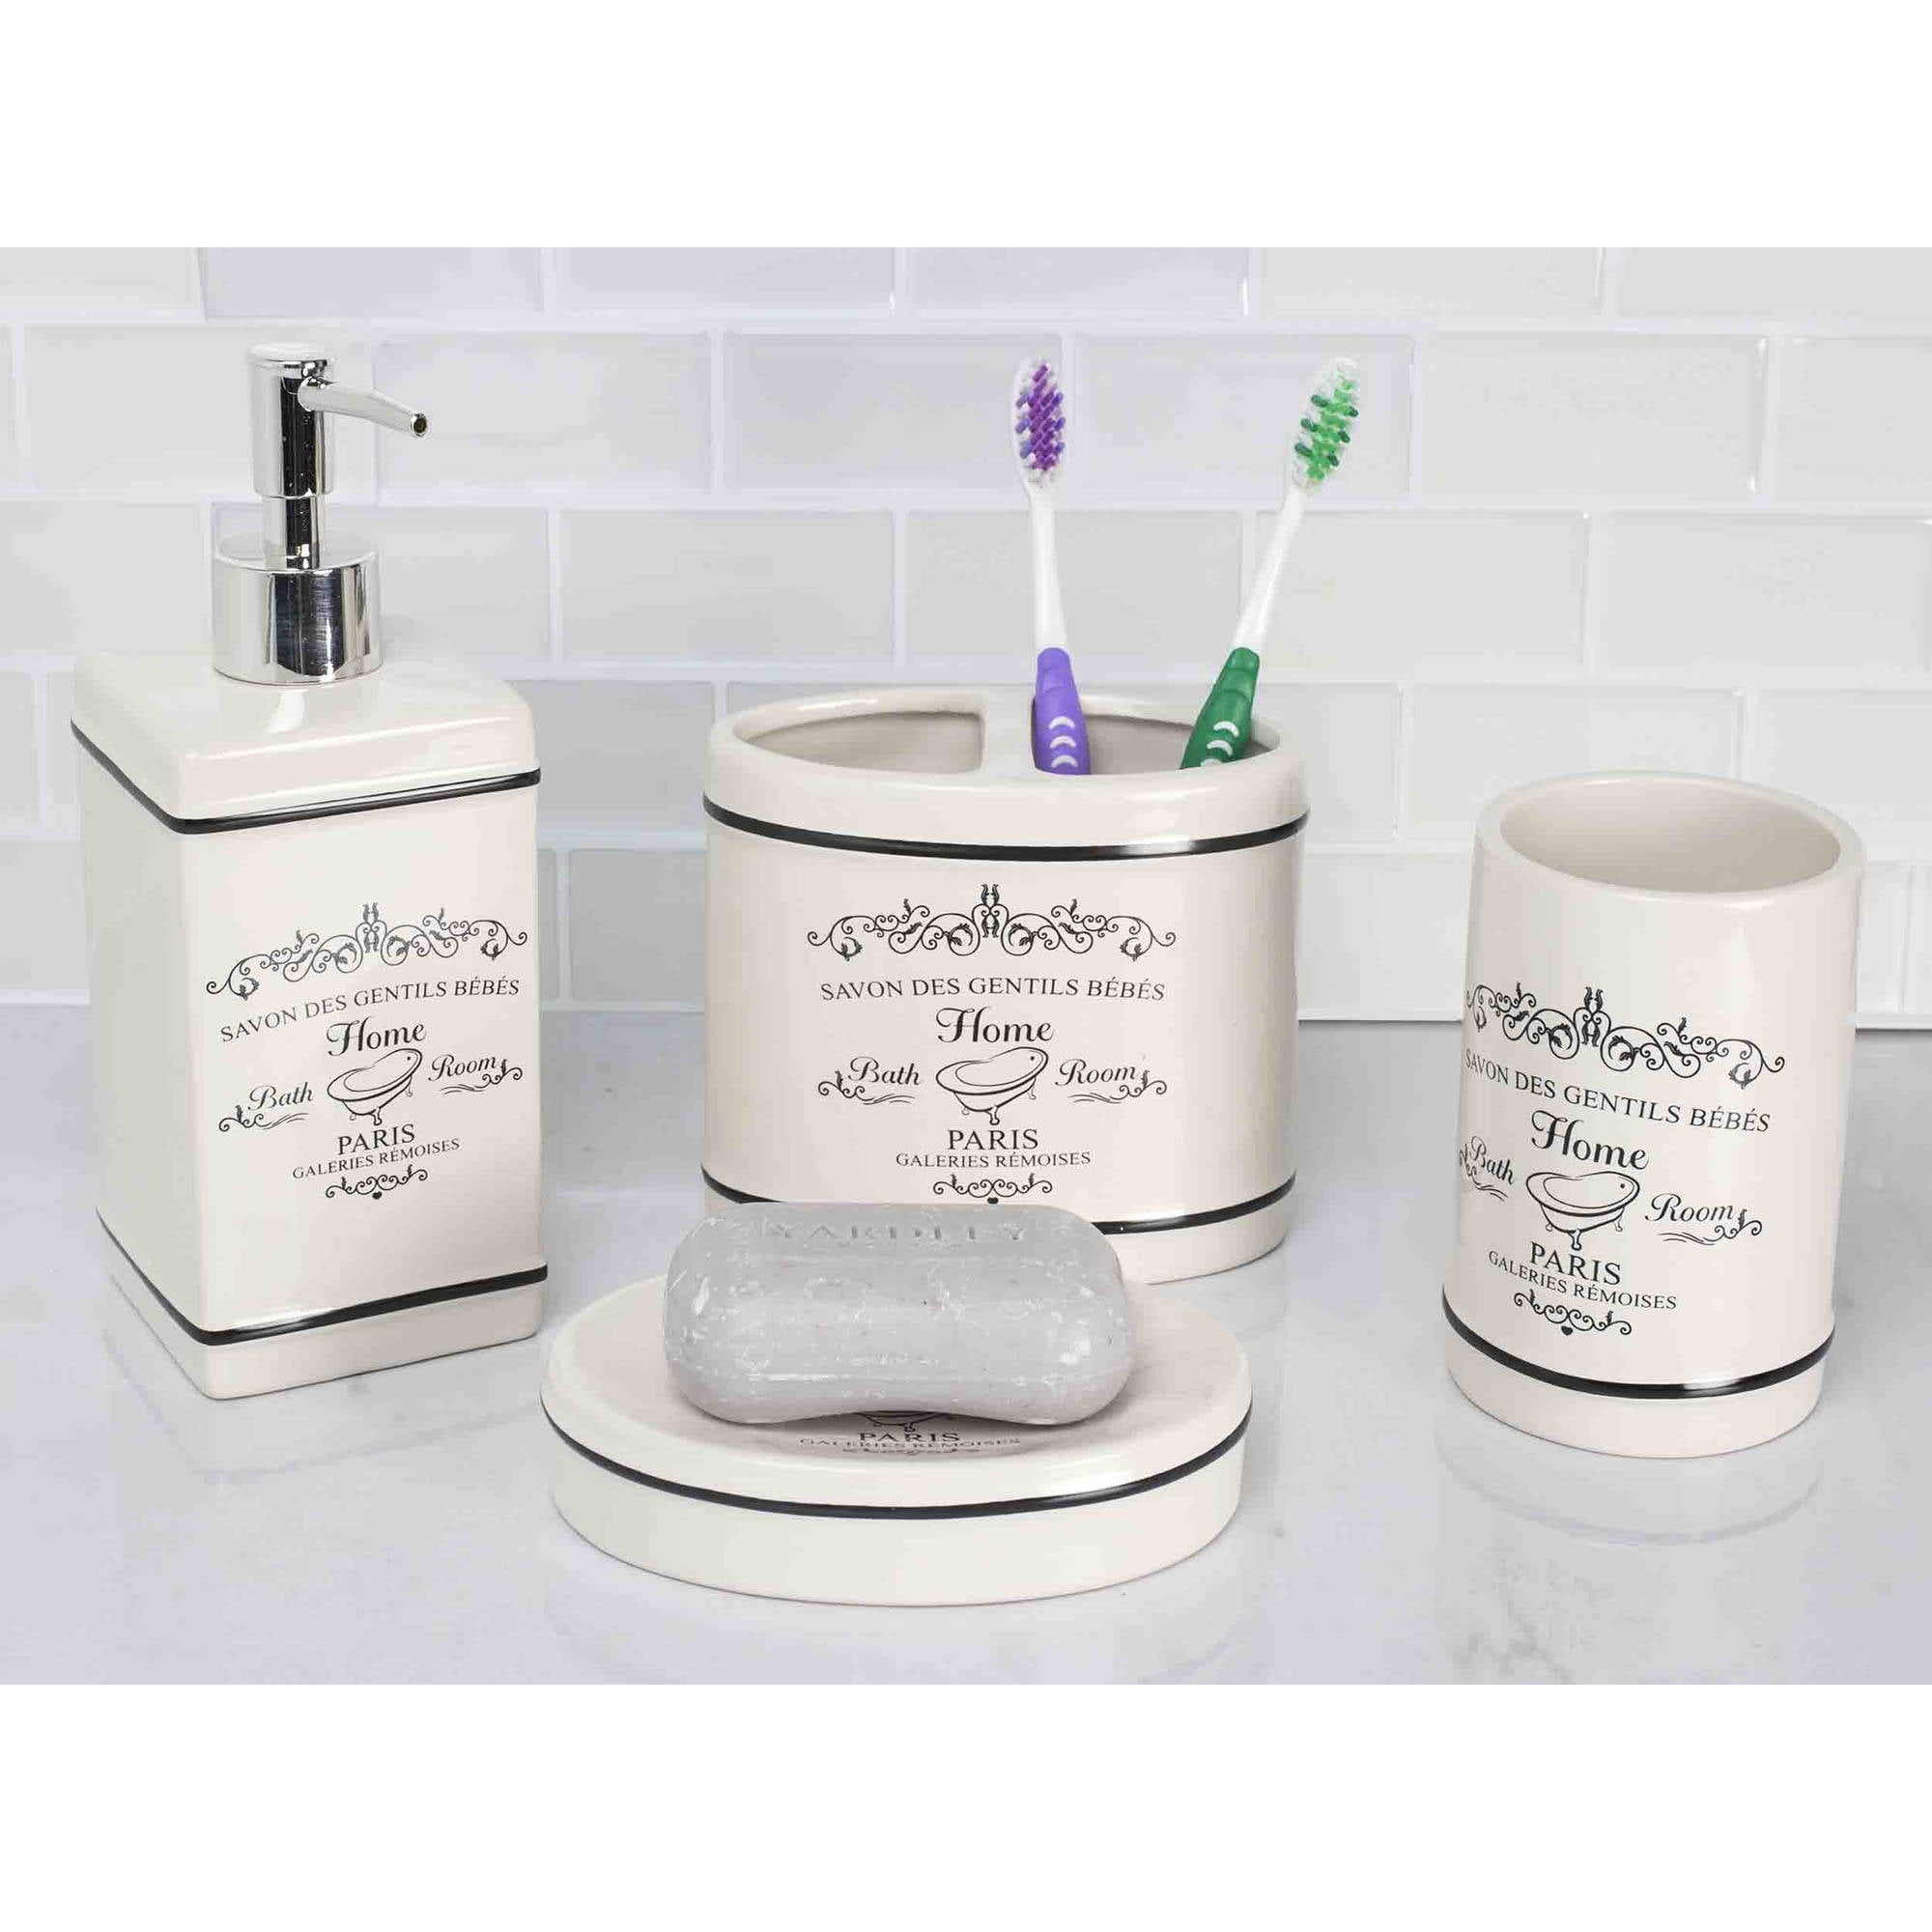 Home Basics 4-Piece Paris Bathroom Accessory Set